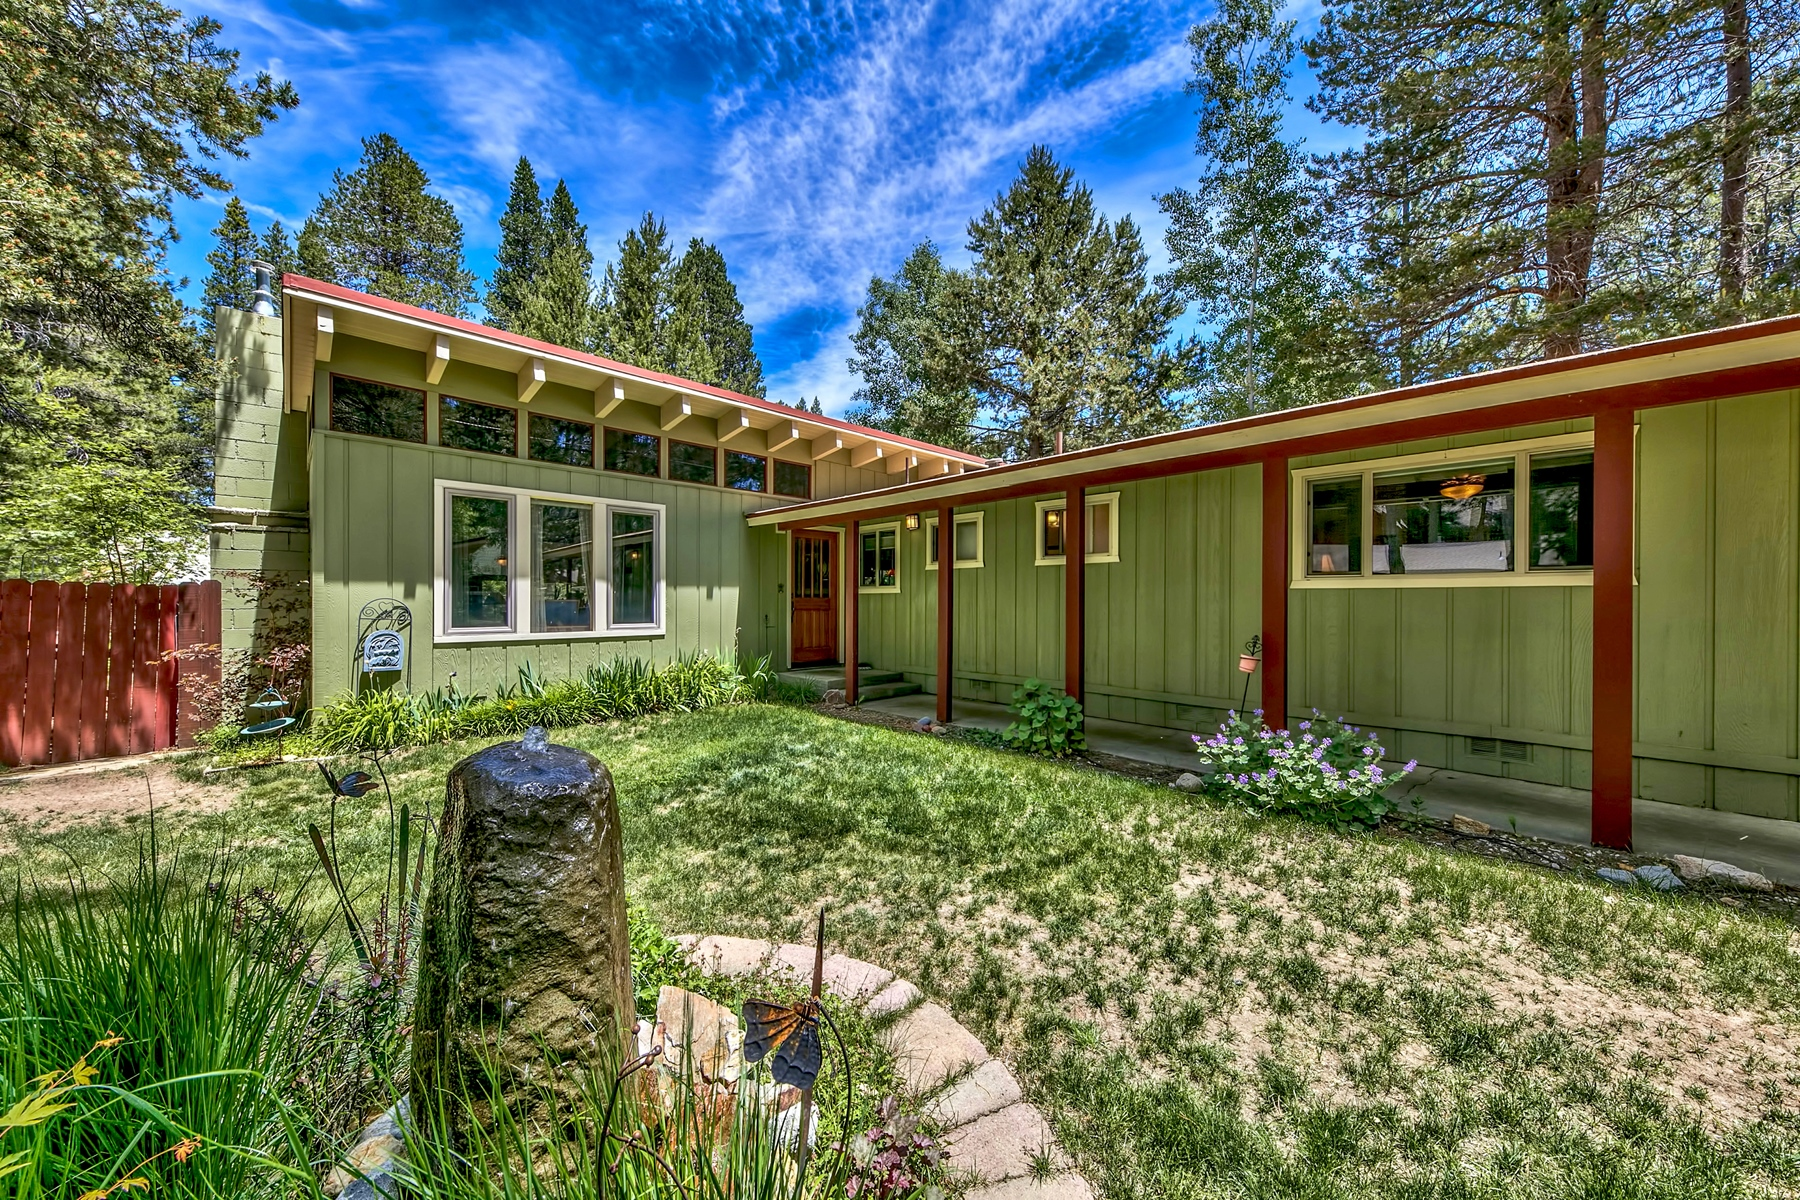 Property por un Venta en 841 Michael Drive, South Lake Tahoe, CA 96150 841 Michael Drive South Lake Tahoe, California 96150 Estados Unidos